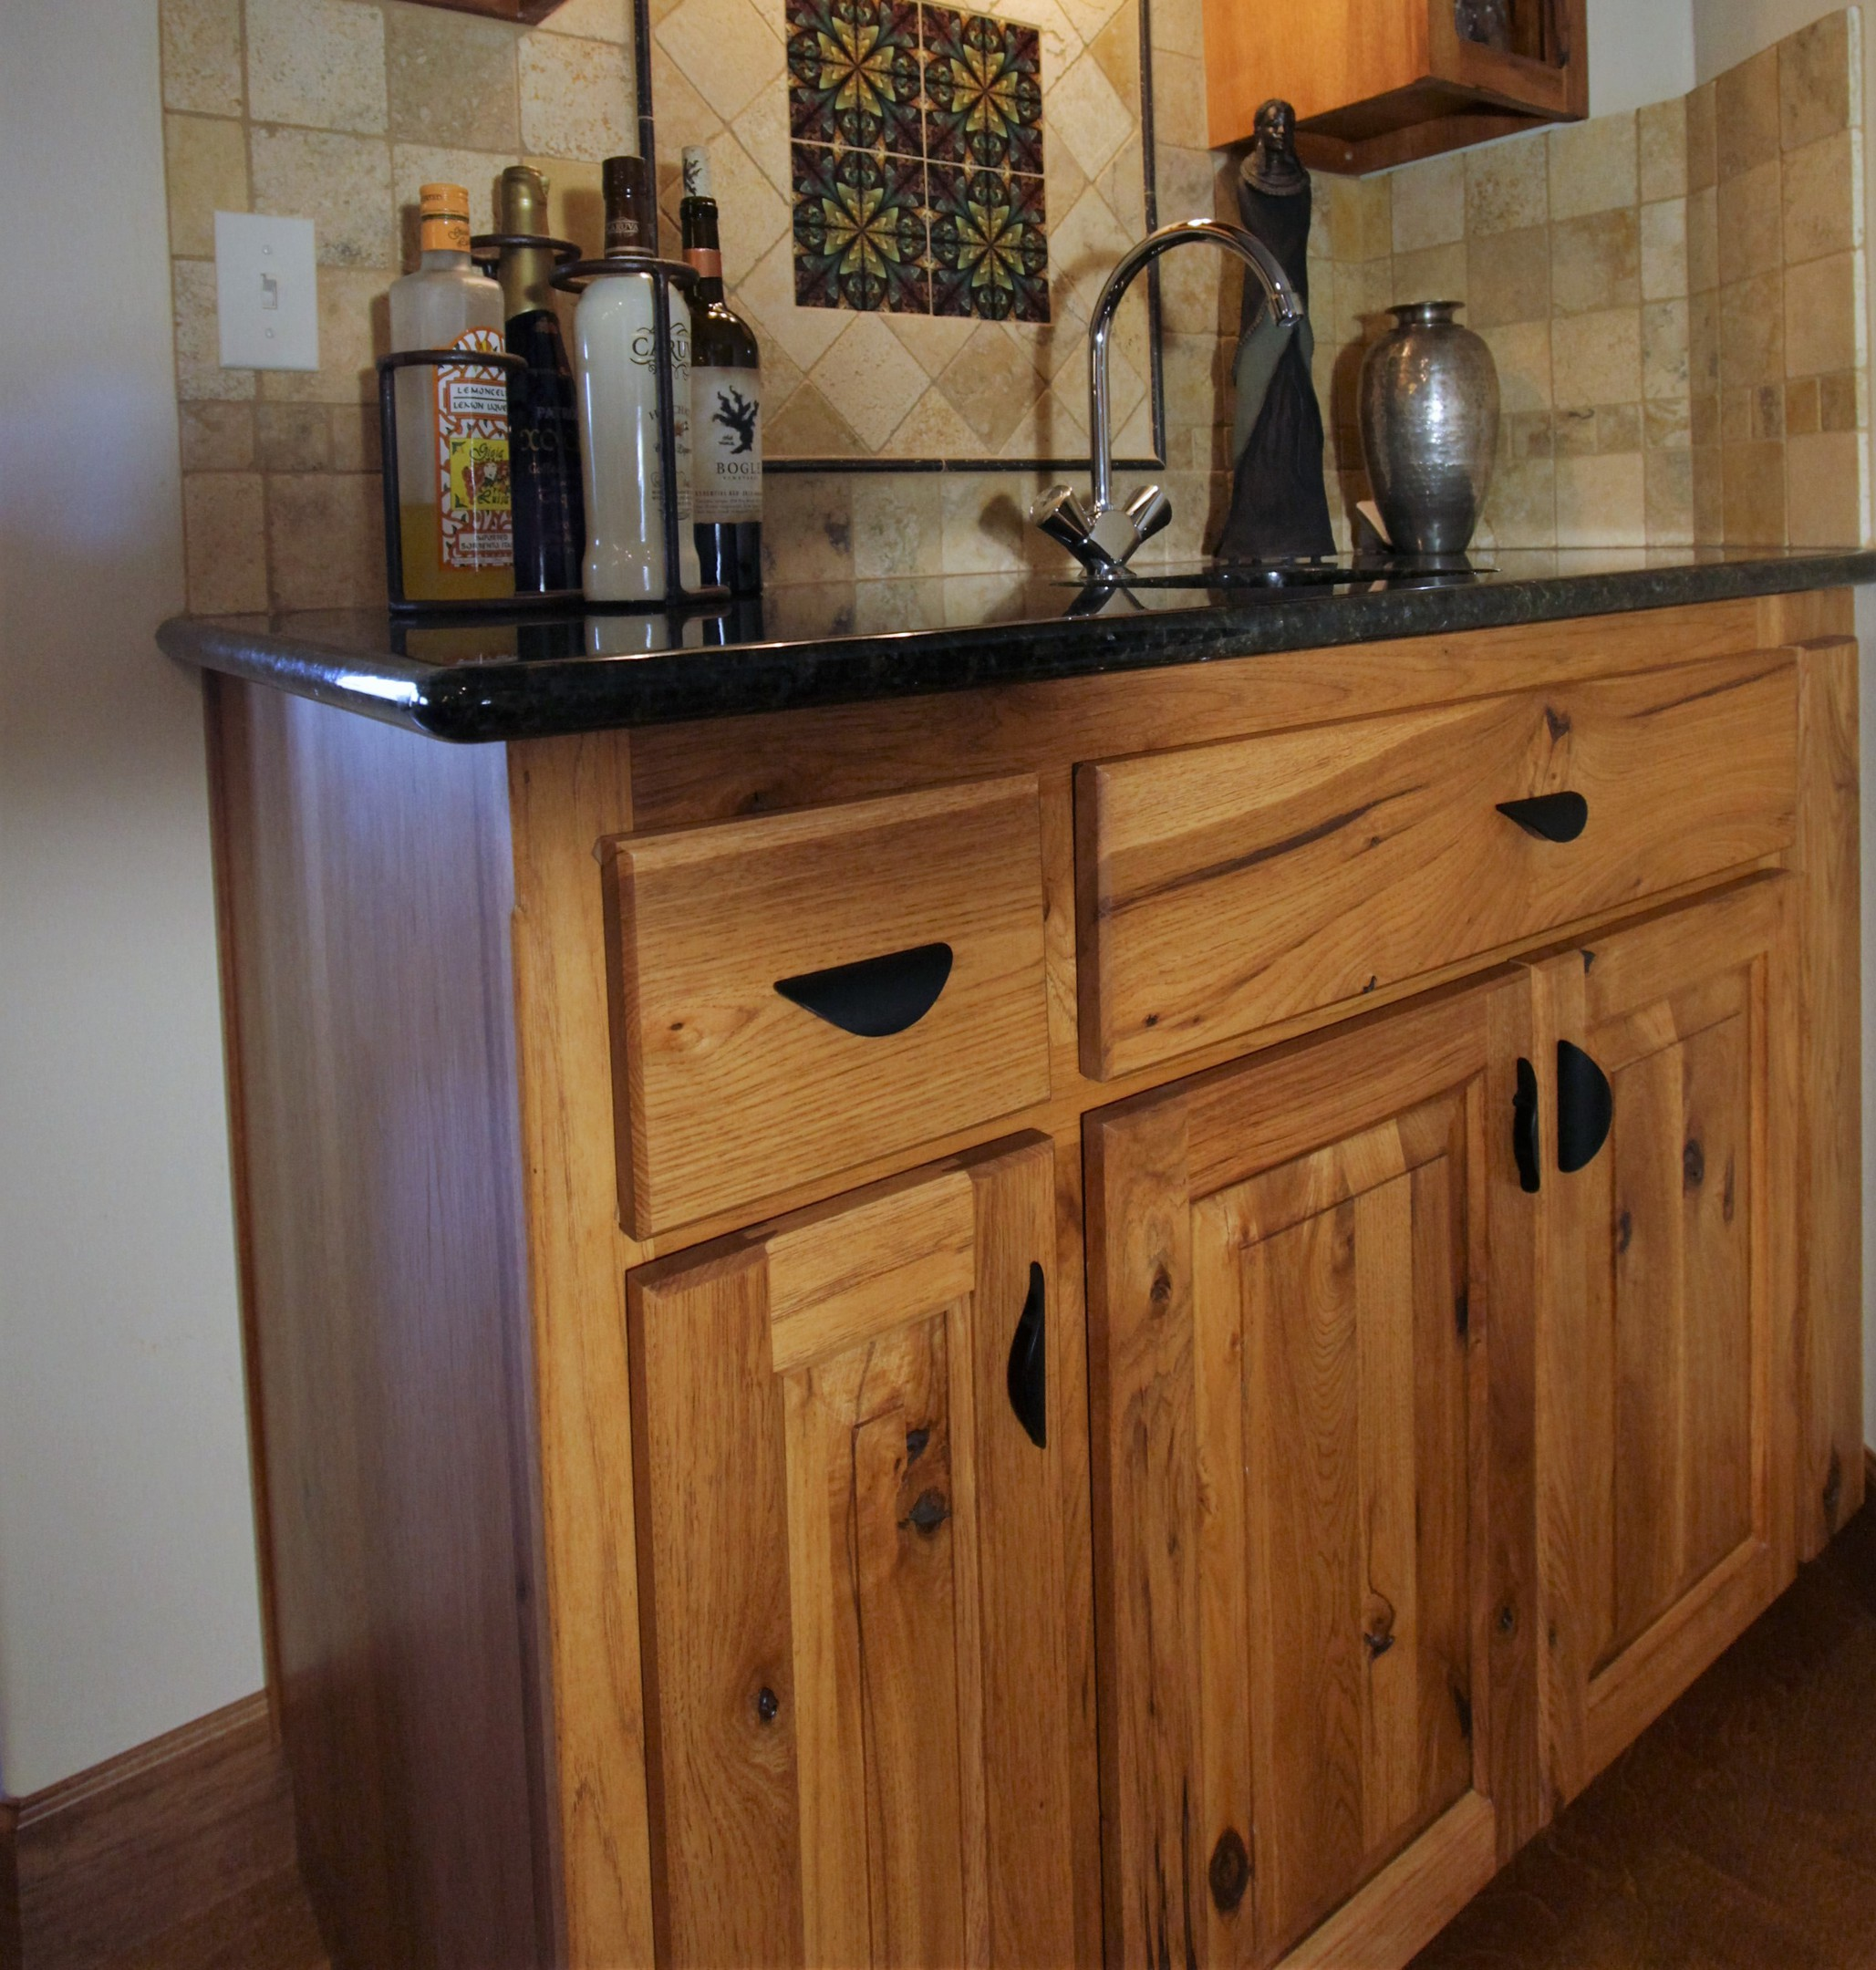 Knotty Hickory Kitchen Cabinets: Affordable Custom Cabinets